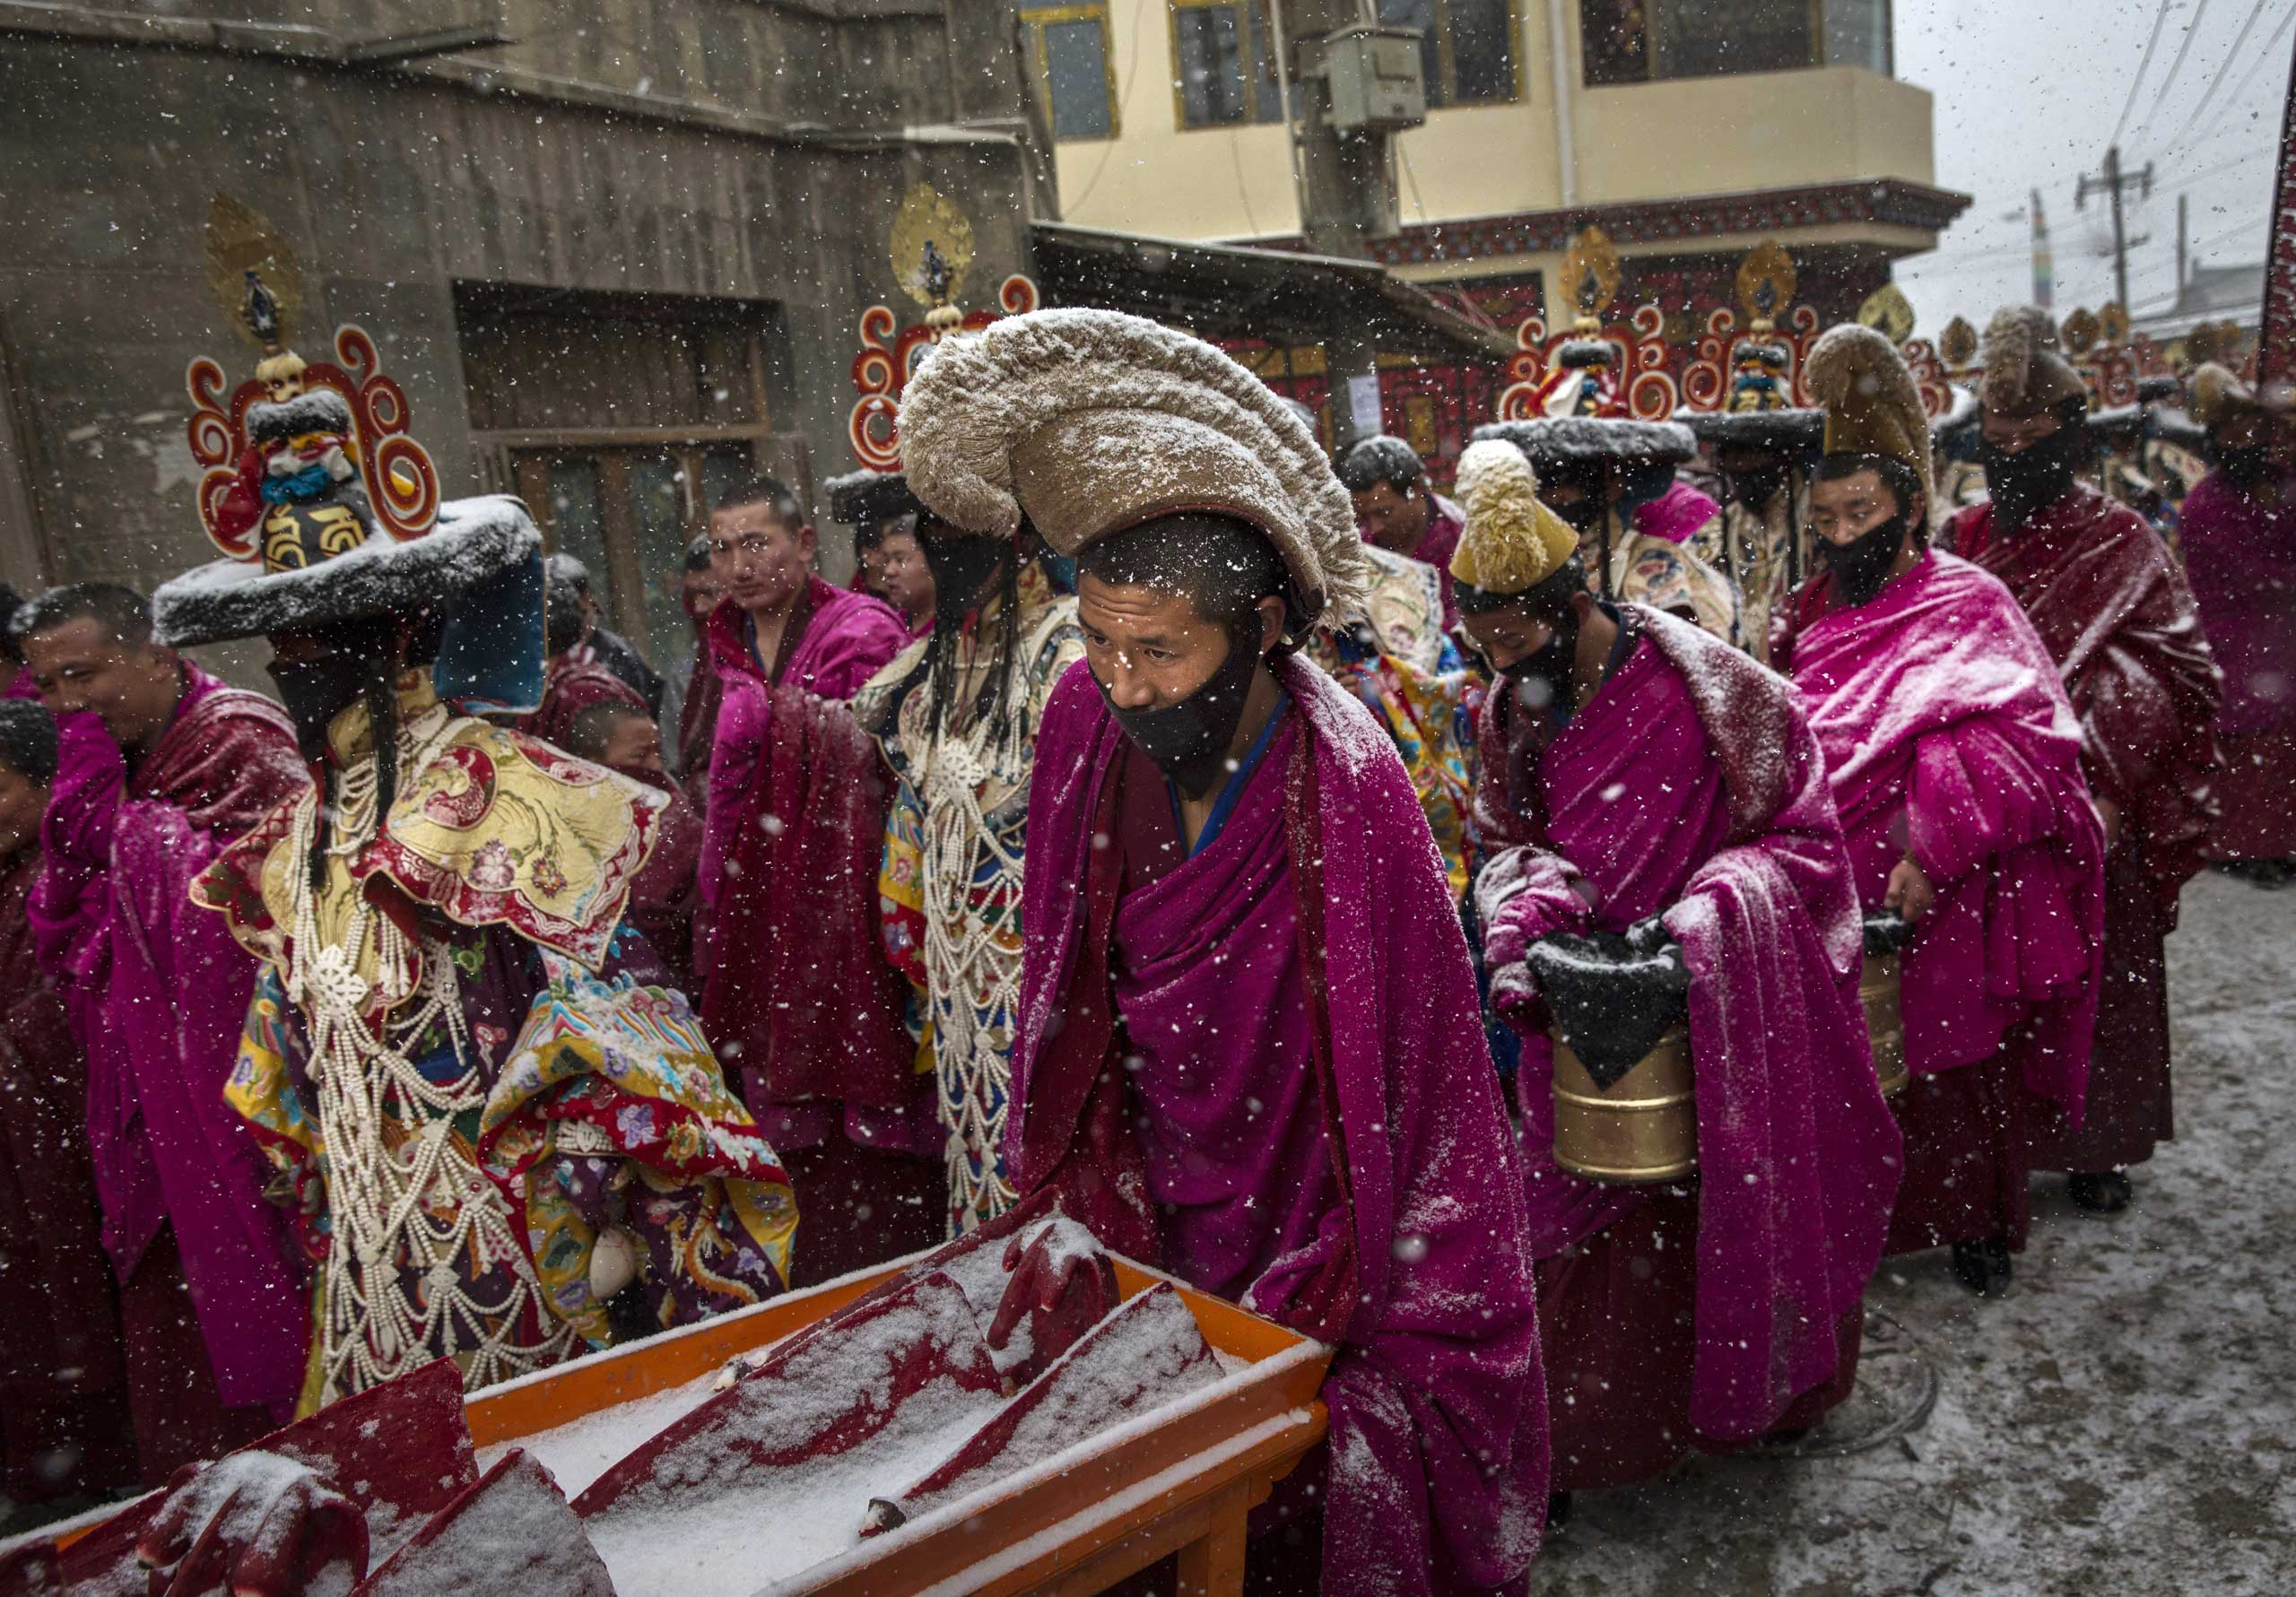 Tibetan Buddhist monks of the Gelug, or Yellow Hat order, are covered in snow as they take part in a procession during Monlam or the Great Prayer rituals on March 4, 2015 at the Labrang Monastery.